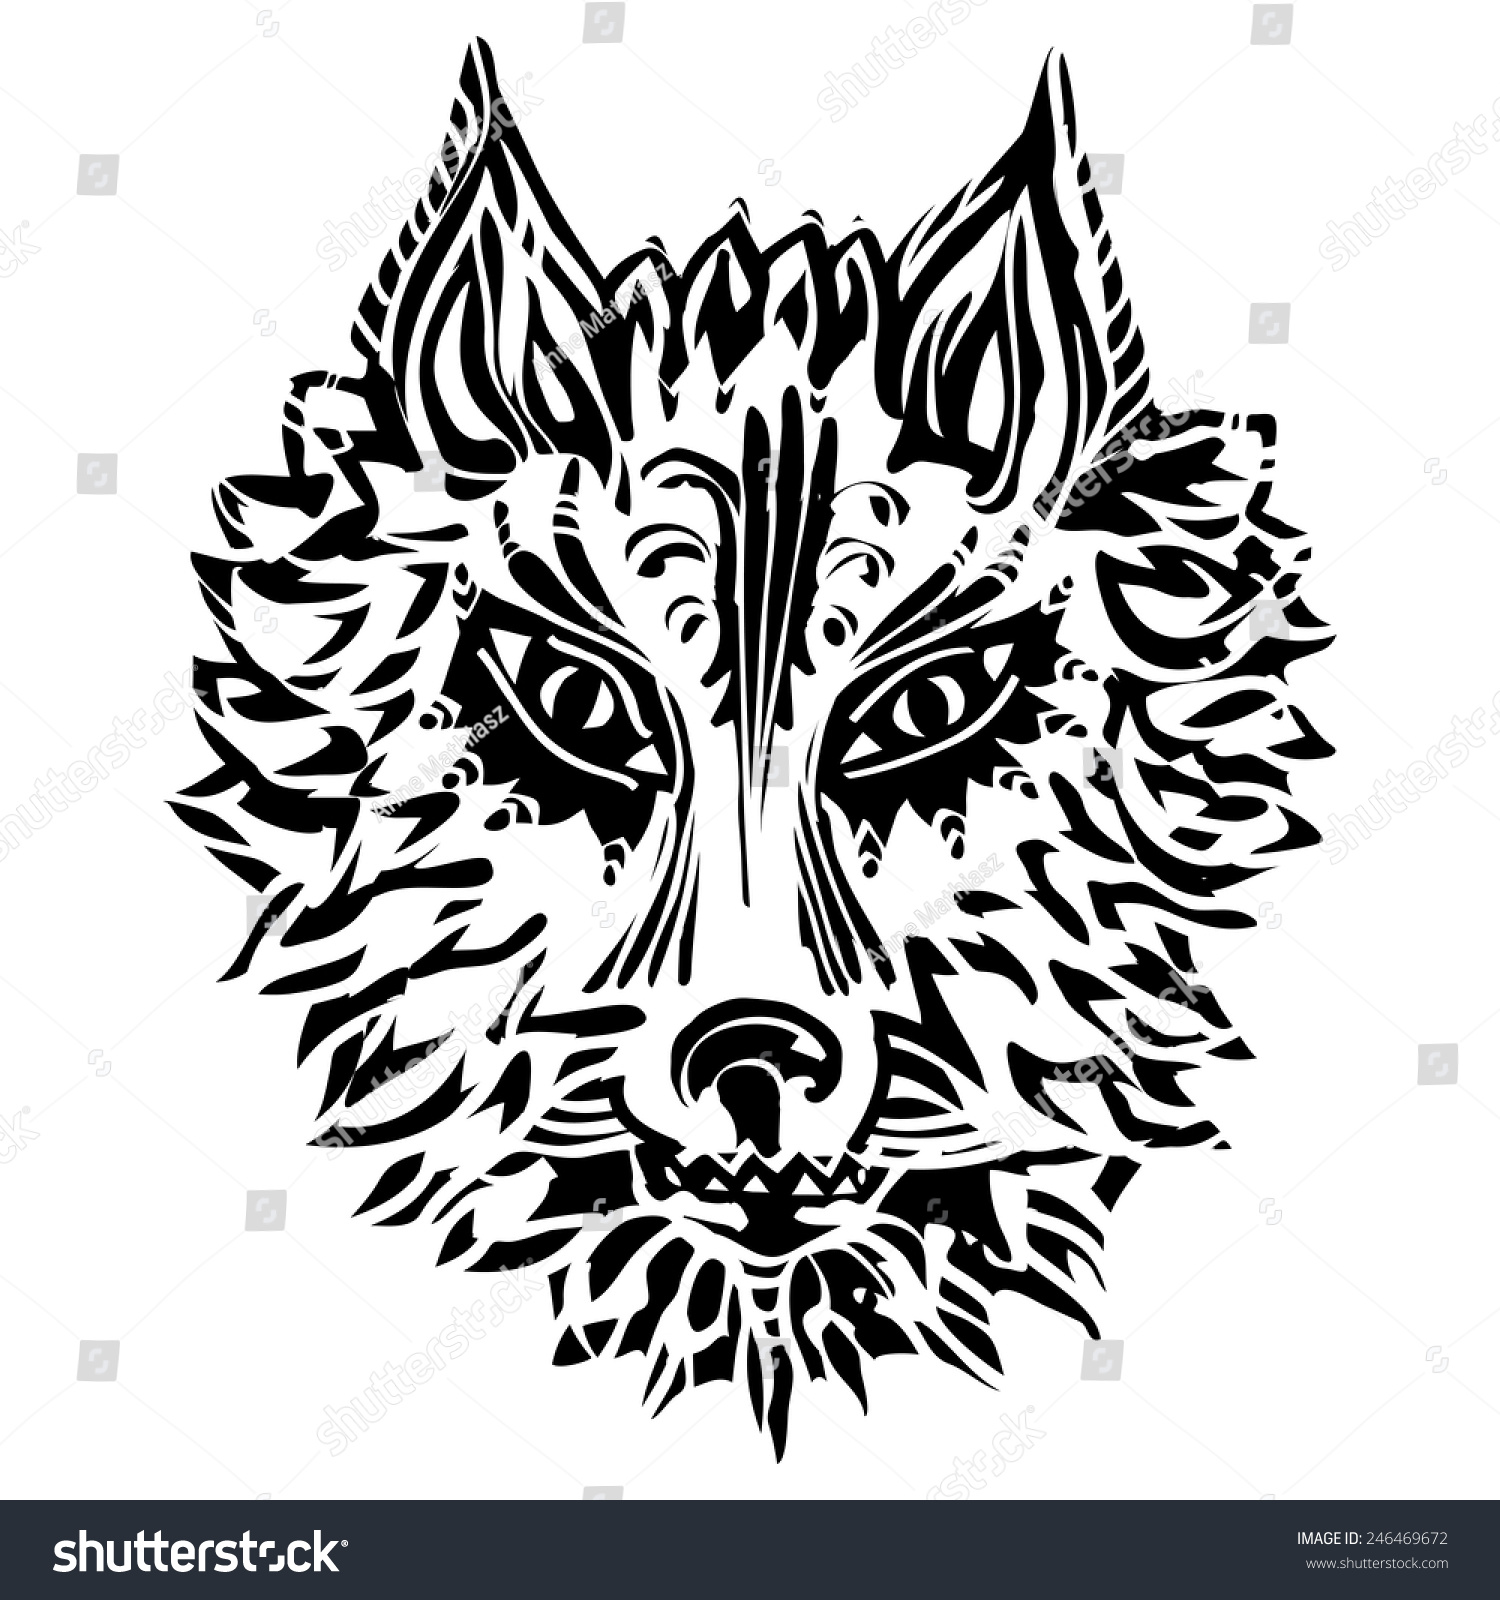 Royalty Free Wolf Symbol Of Loyalty And Strength 246469672 Stock